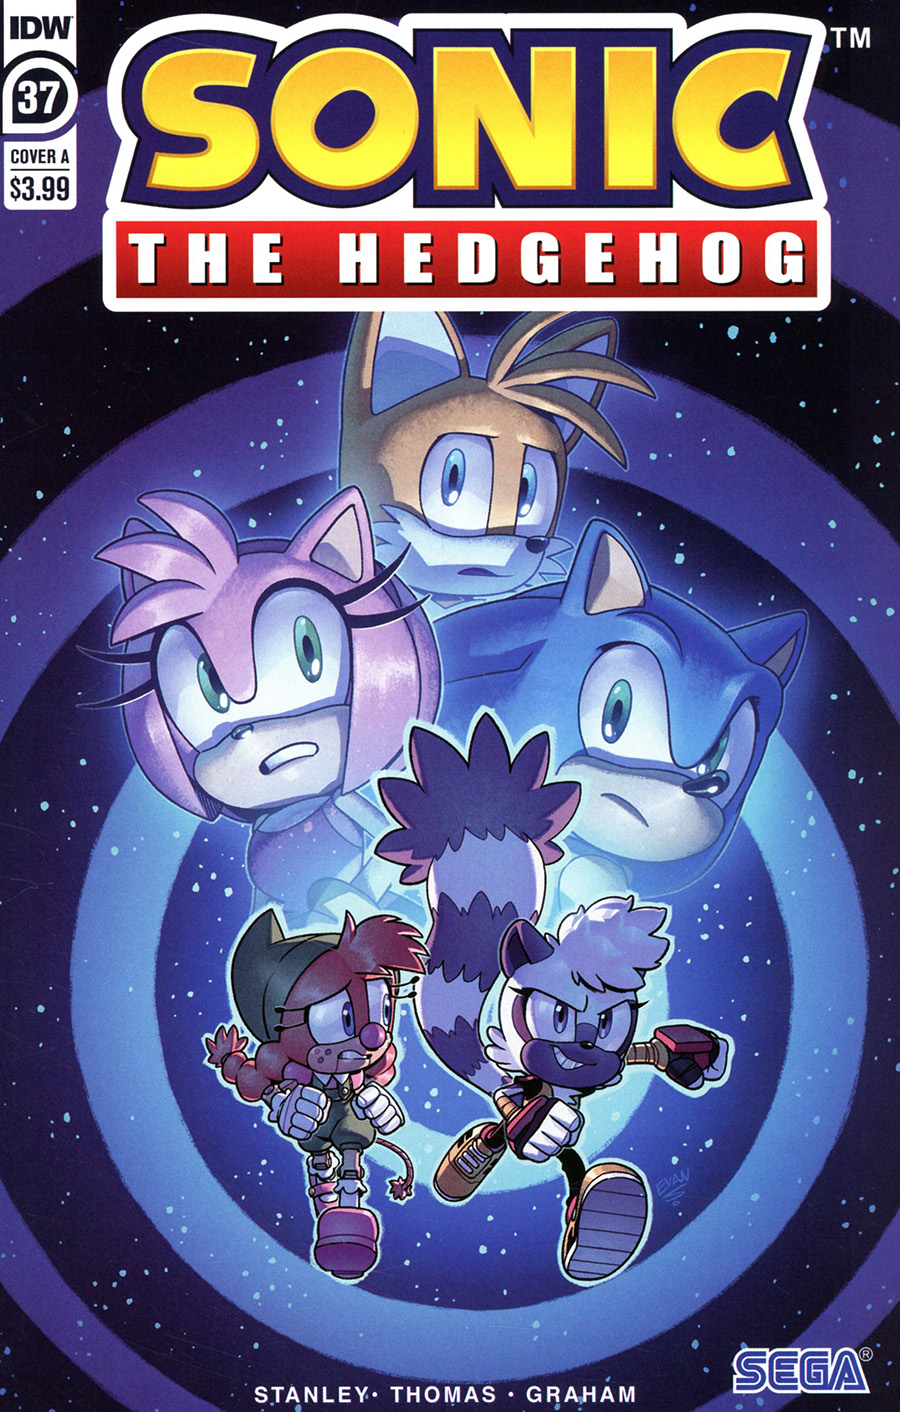 Sonic The Hedgehog Vol 3 #37 Cover A Regular Evan Stanley Cover